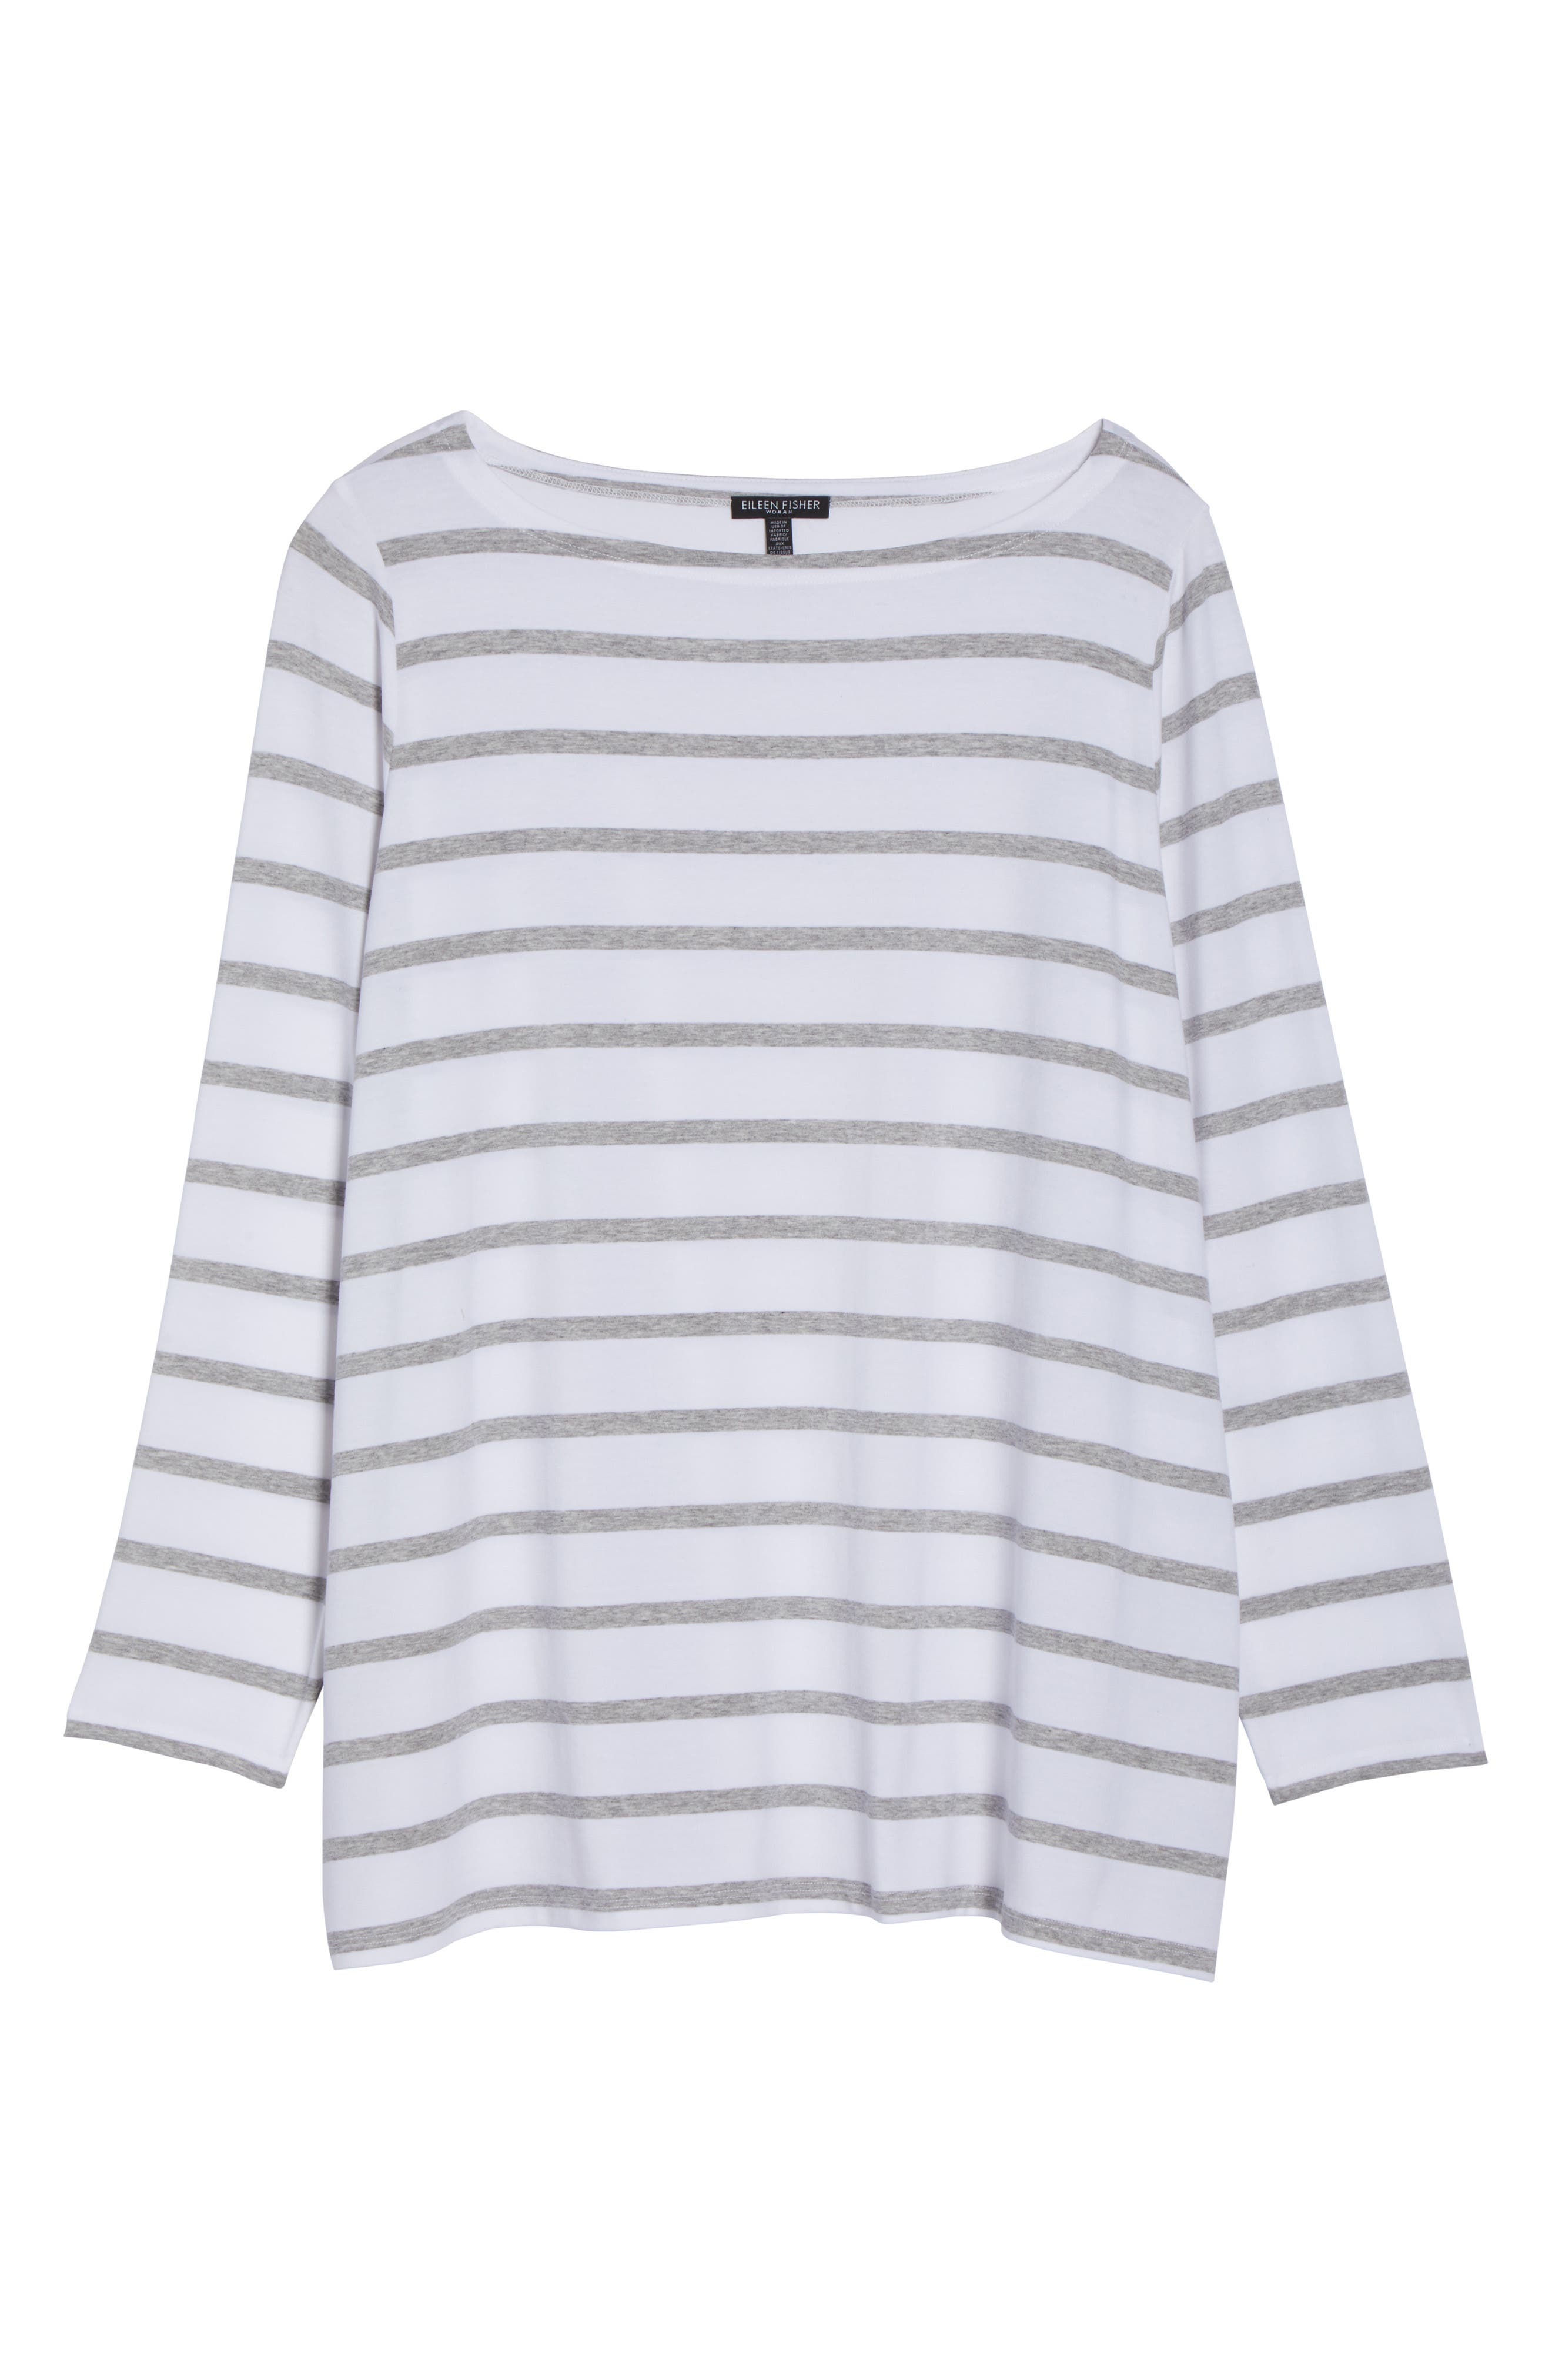 Stripe Stretch Tencel<sup>®</sup> Lyocell Top,                             Alternate thumbnail 7, color,                             131